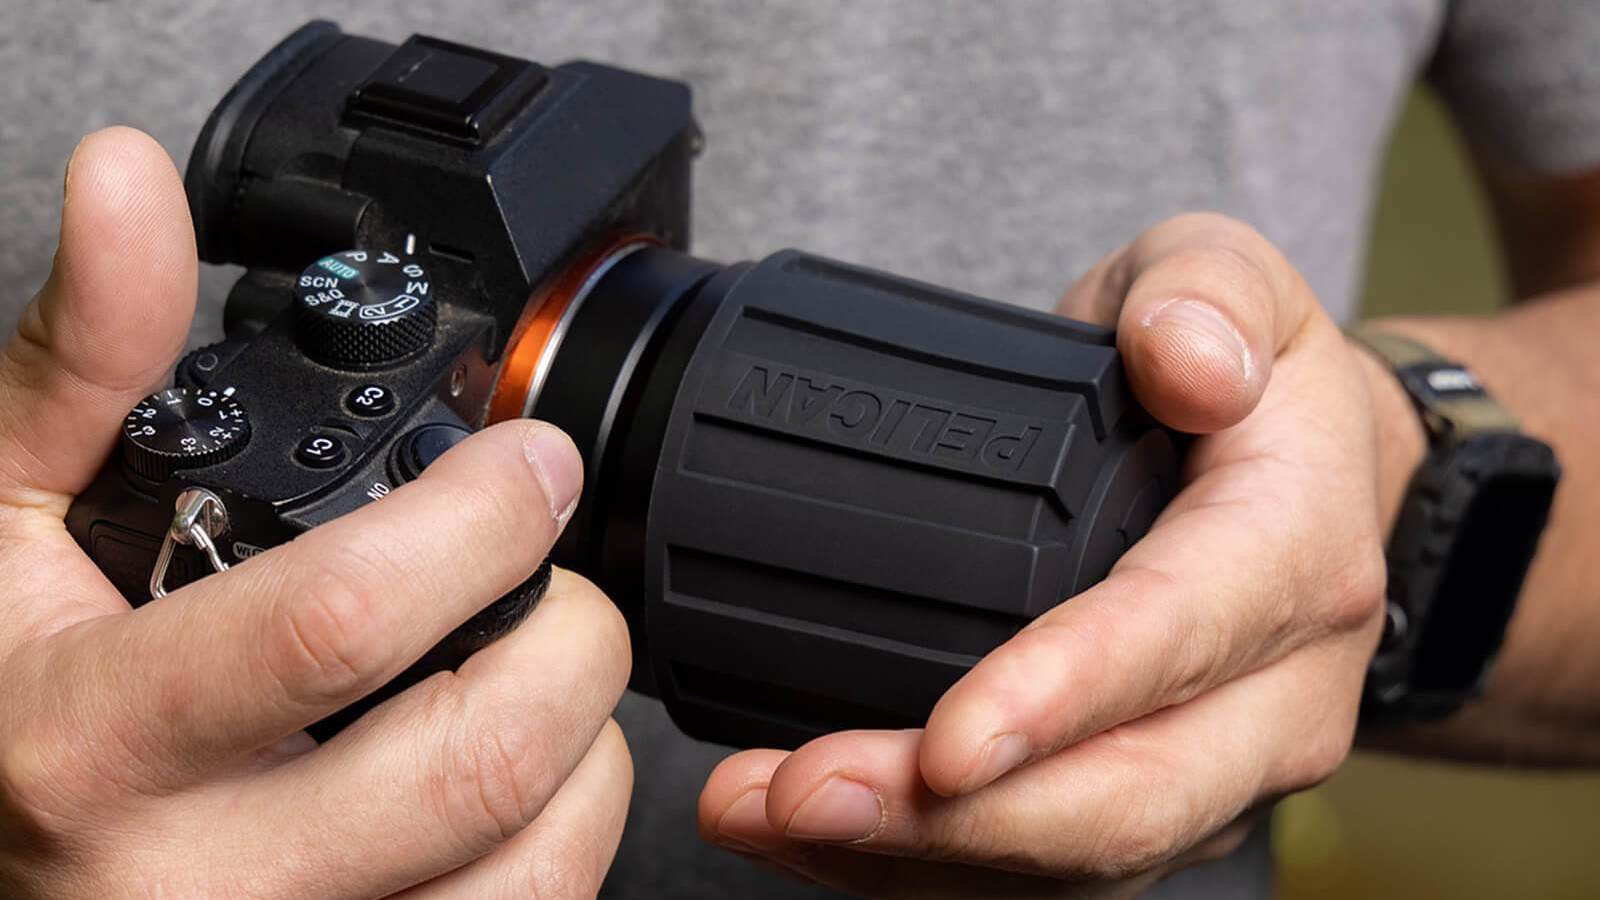 Outdoor Rugged Camera Lens Cover protects every lens you own from dirt, moisture, and more